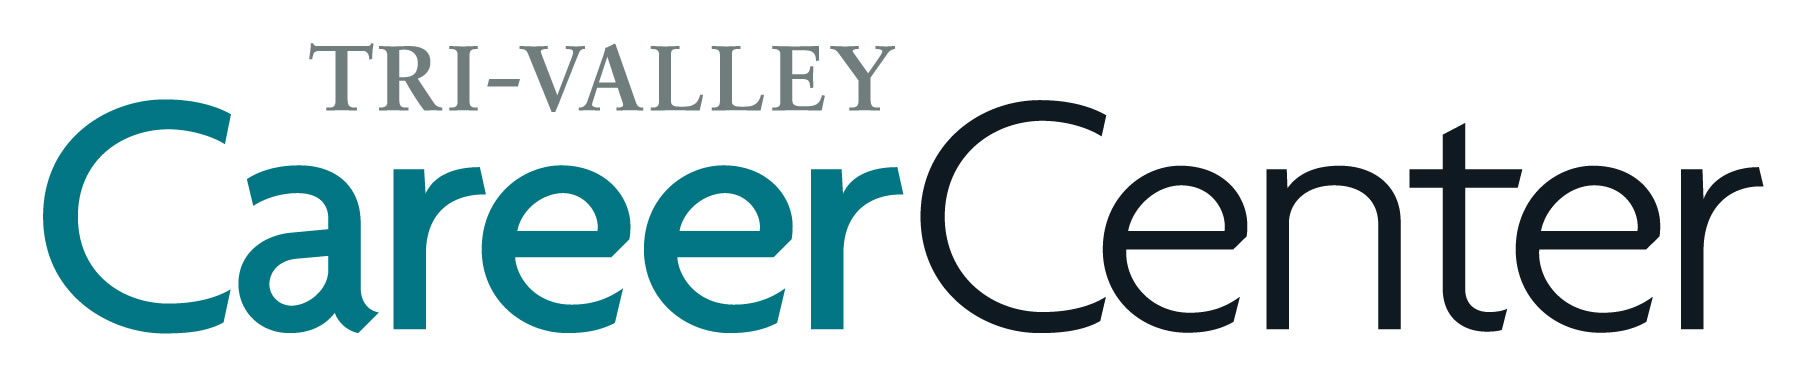 Upcoming Events - Tri-Valley Career Center